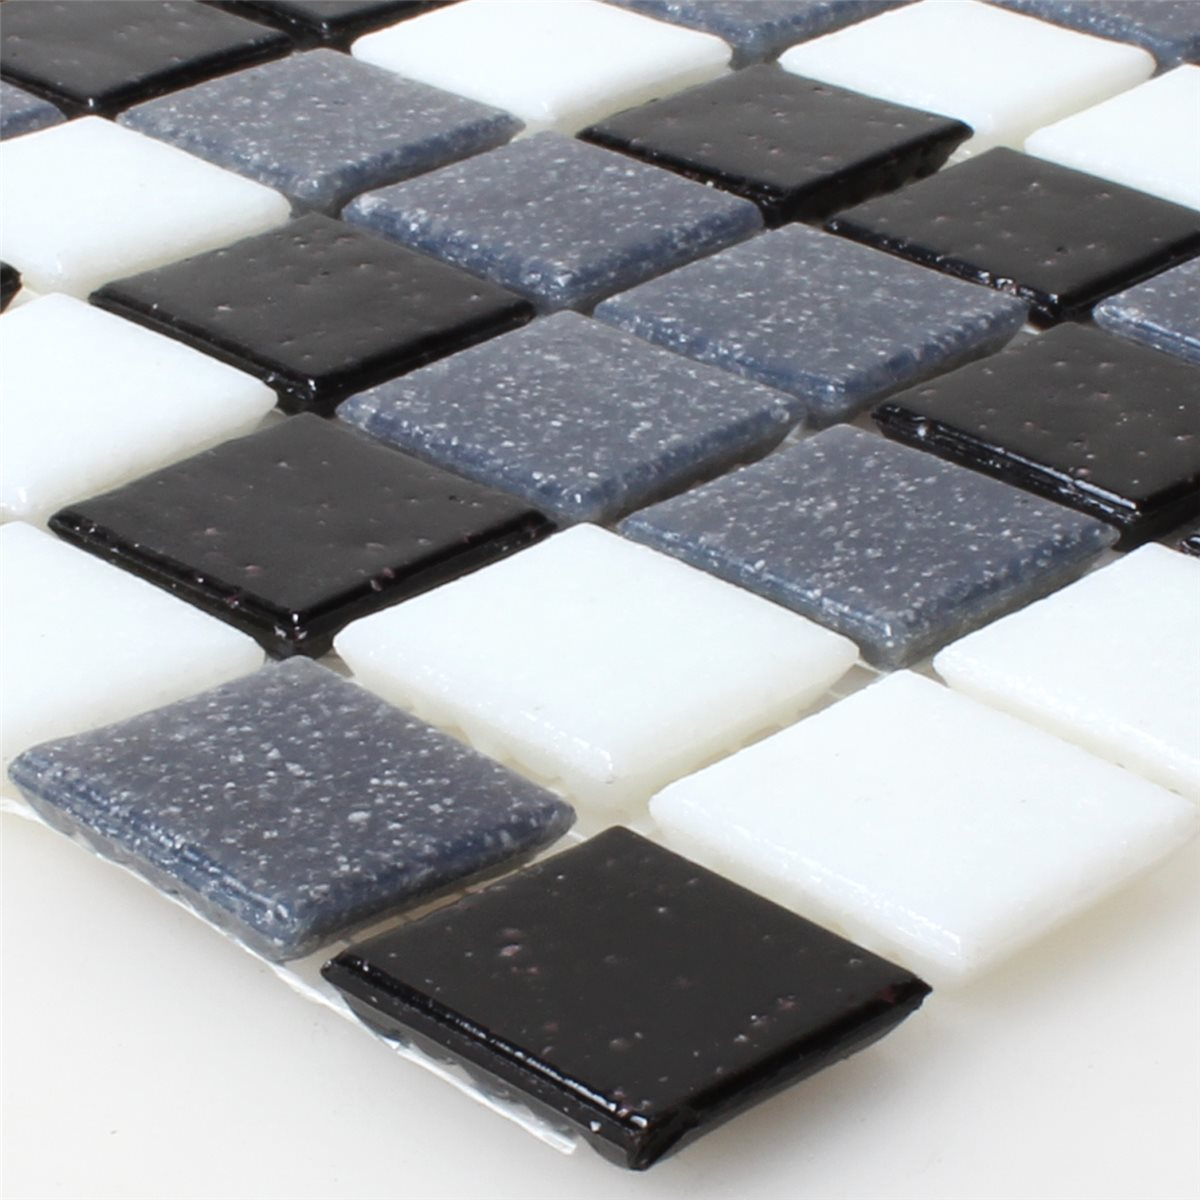 glas mosaikfliesen weiss grau schwarz mix ebay. Black Bedroom Furniture Sets. Home Design Ideas